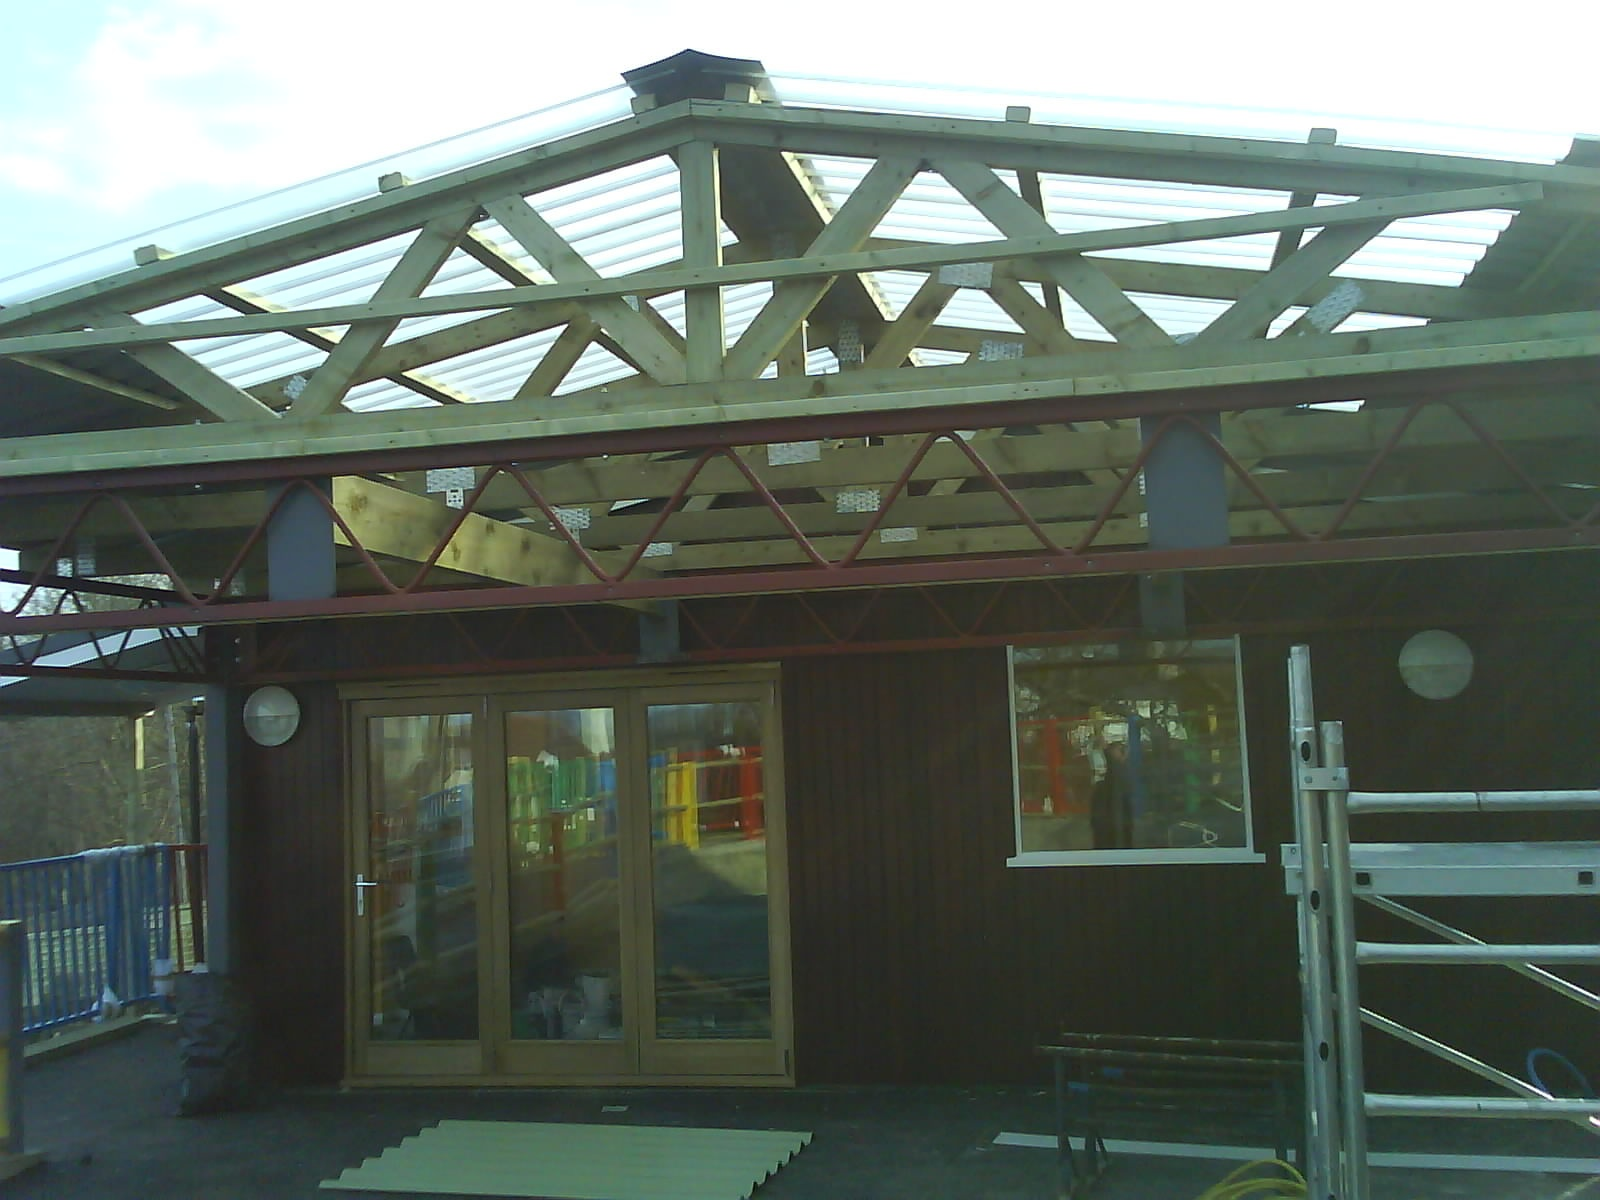 Roof canopy to mobile classroom